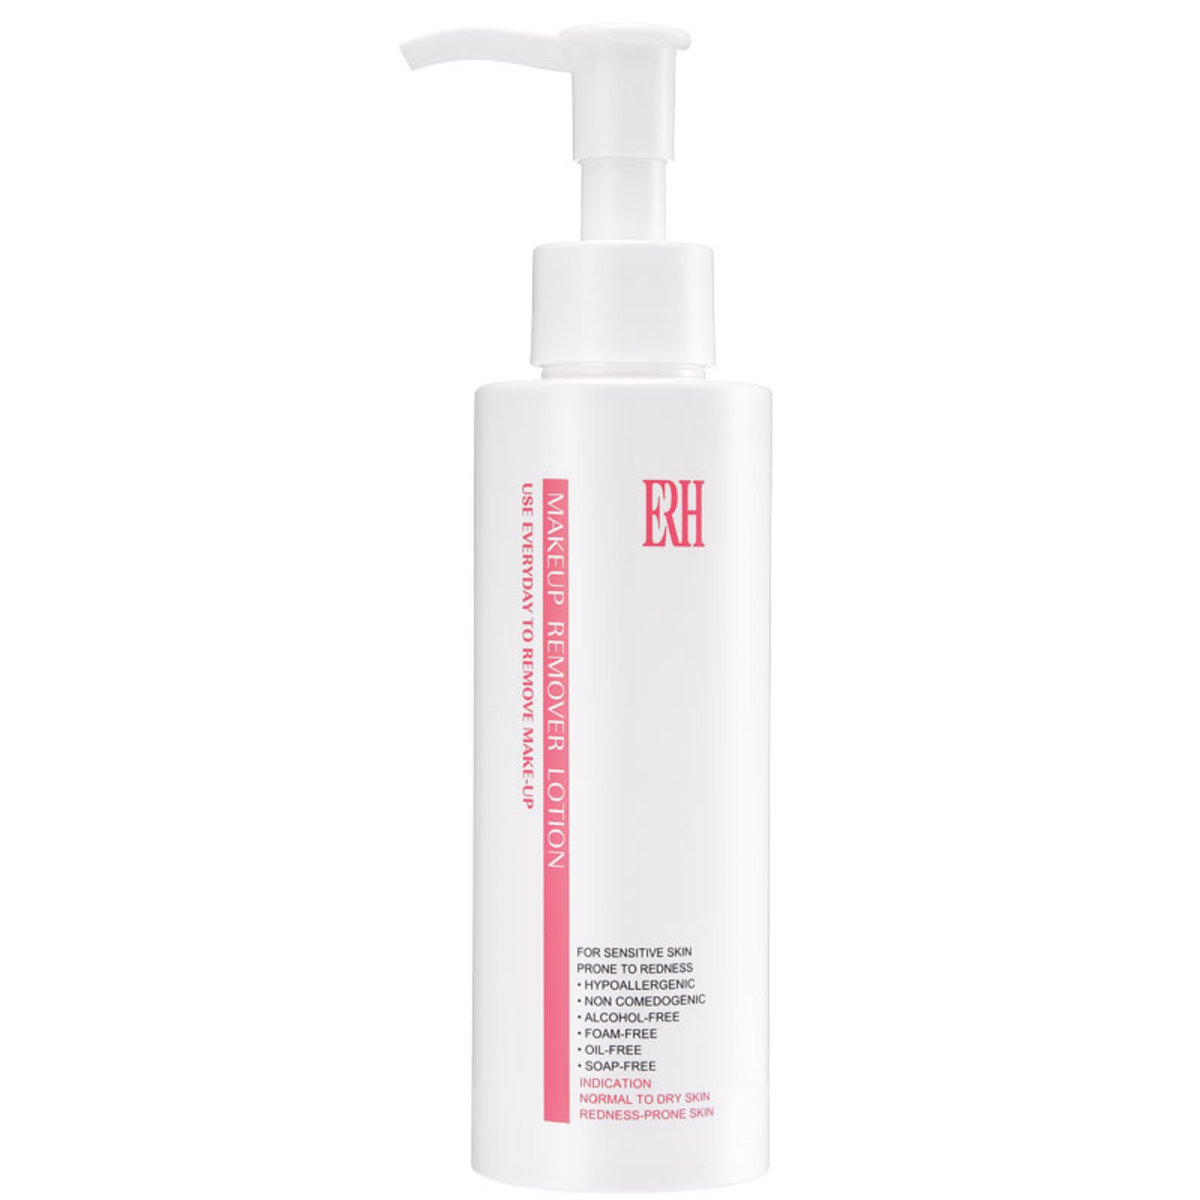 ERH Makeup Remover Lotion 150ml